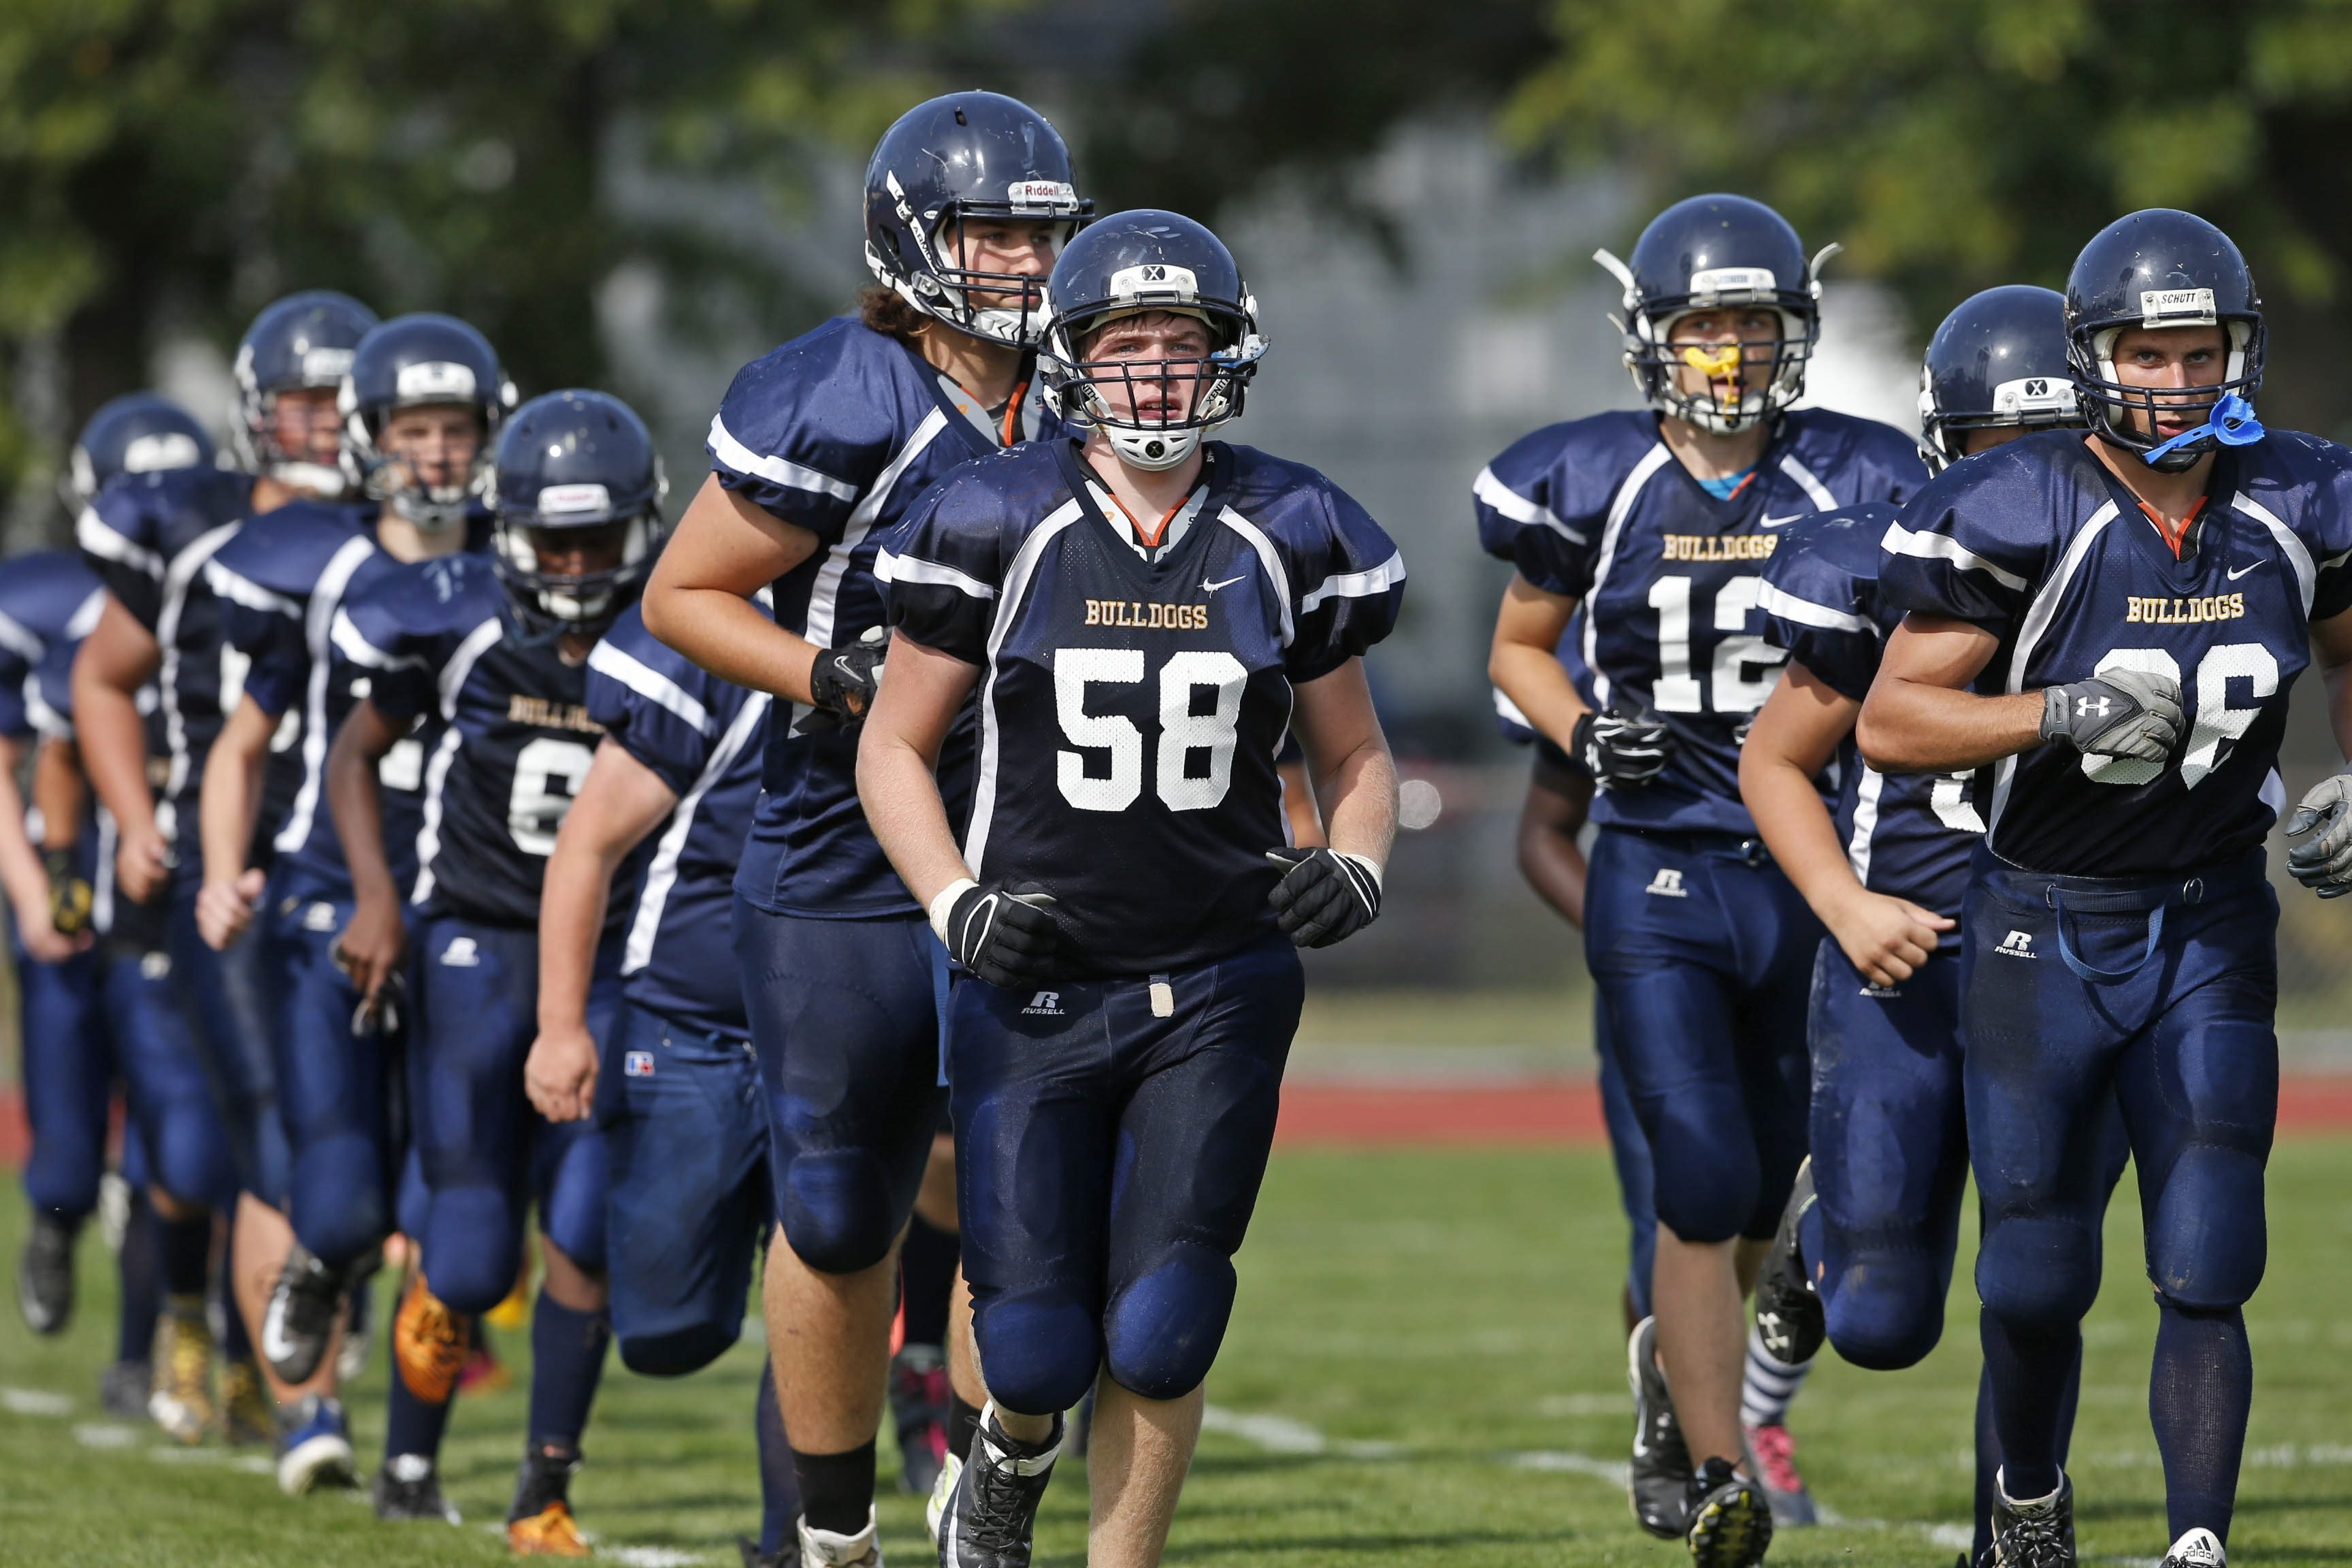 Kenmore East seniors Josh Moore (58) and Jacob Elgie (66) are fighting through a season where the numbers of players has been scarce and the team has been outscored 139-12.